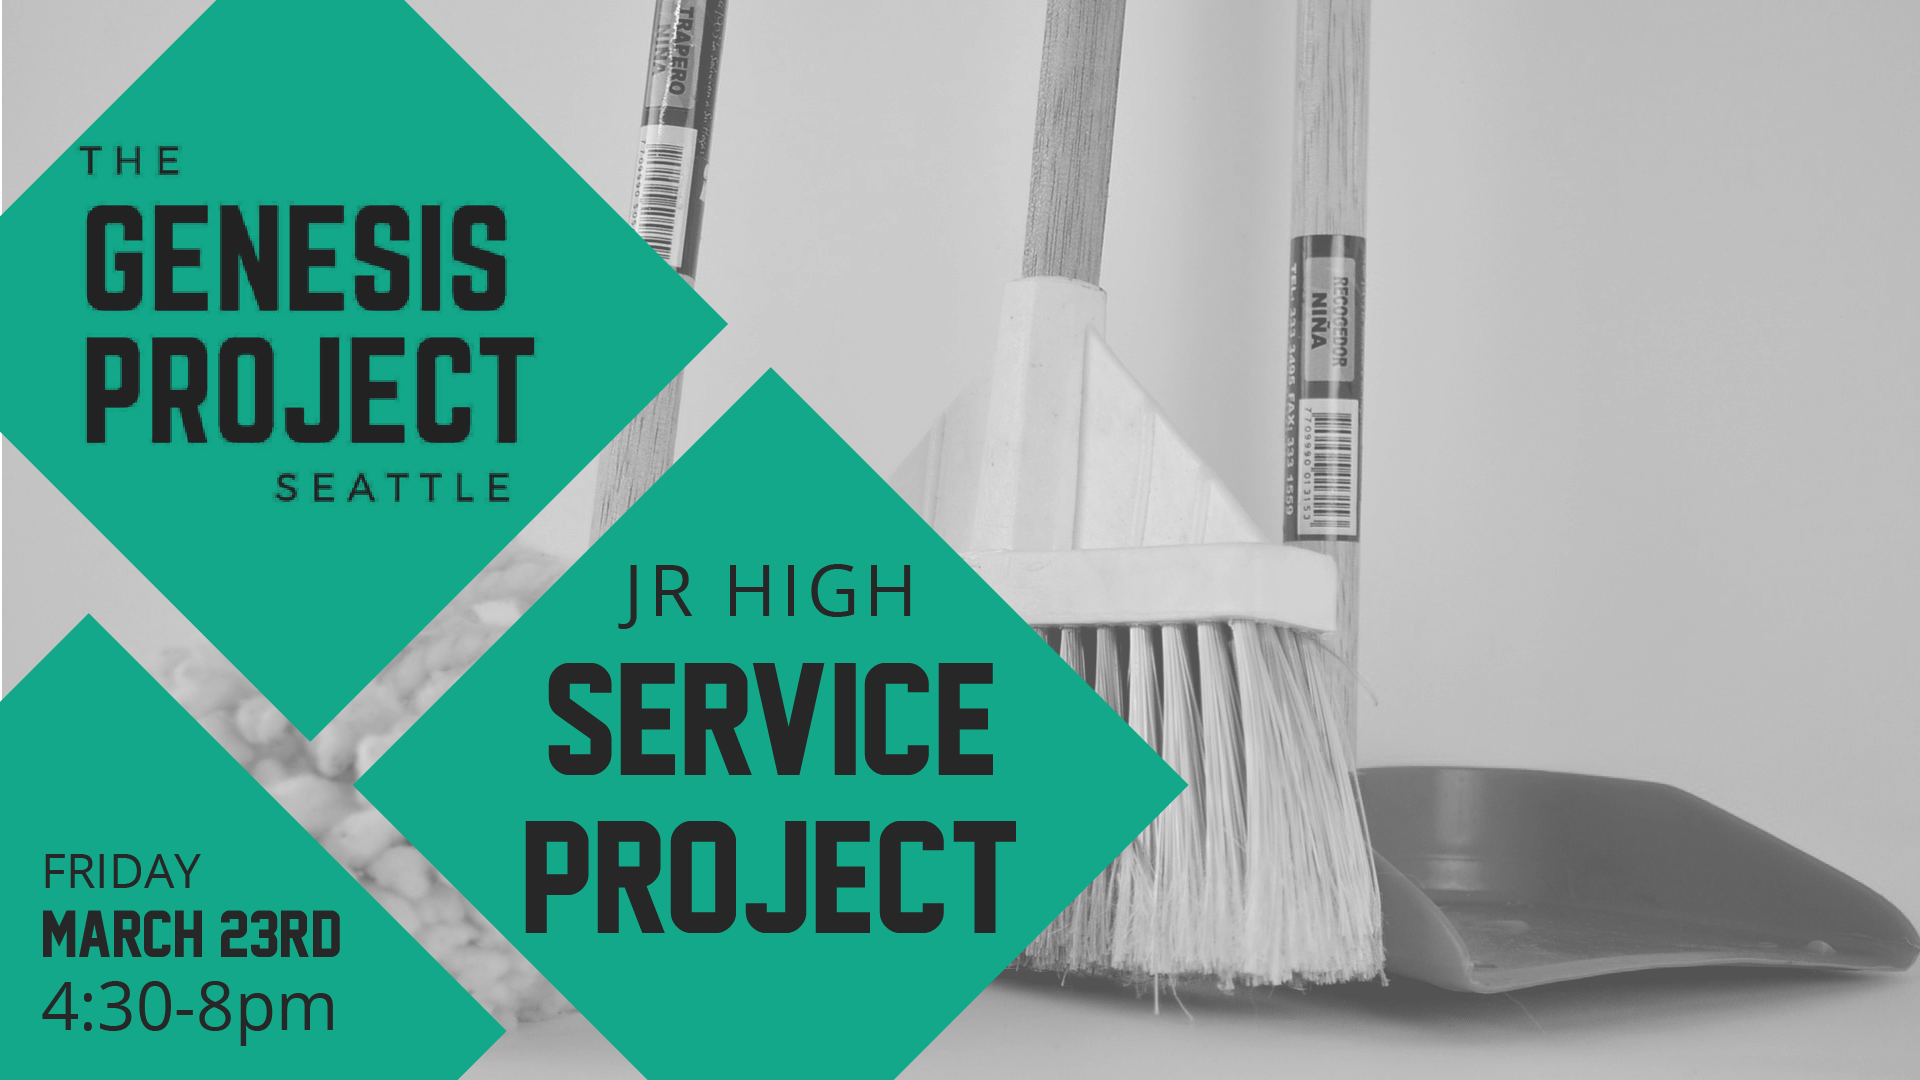 Jr High - Service Project at the Genesis Project